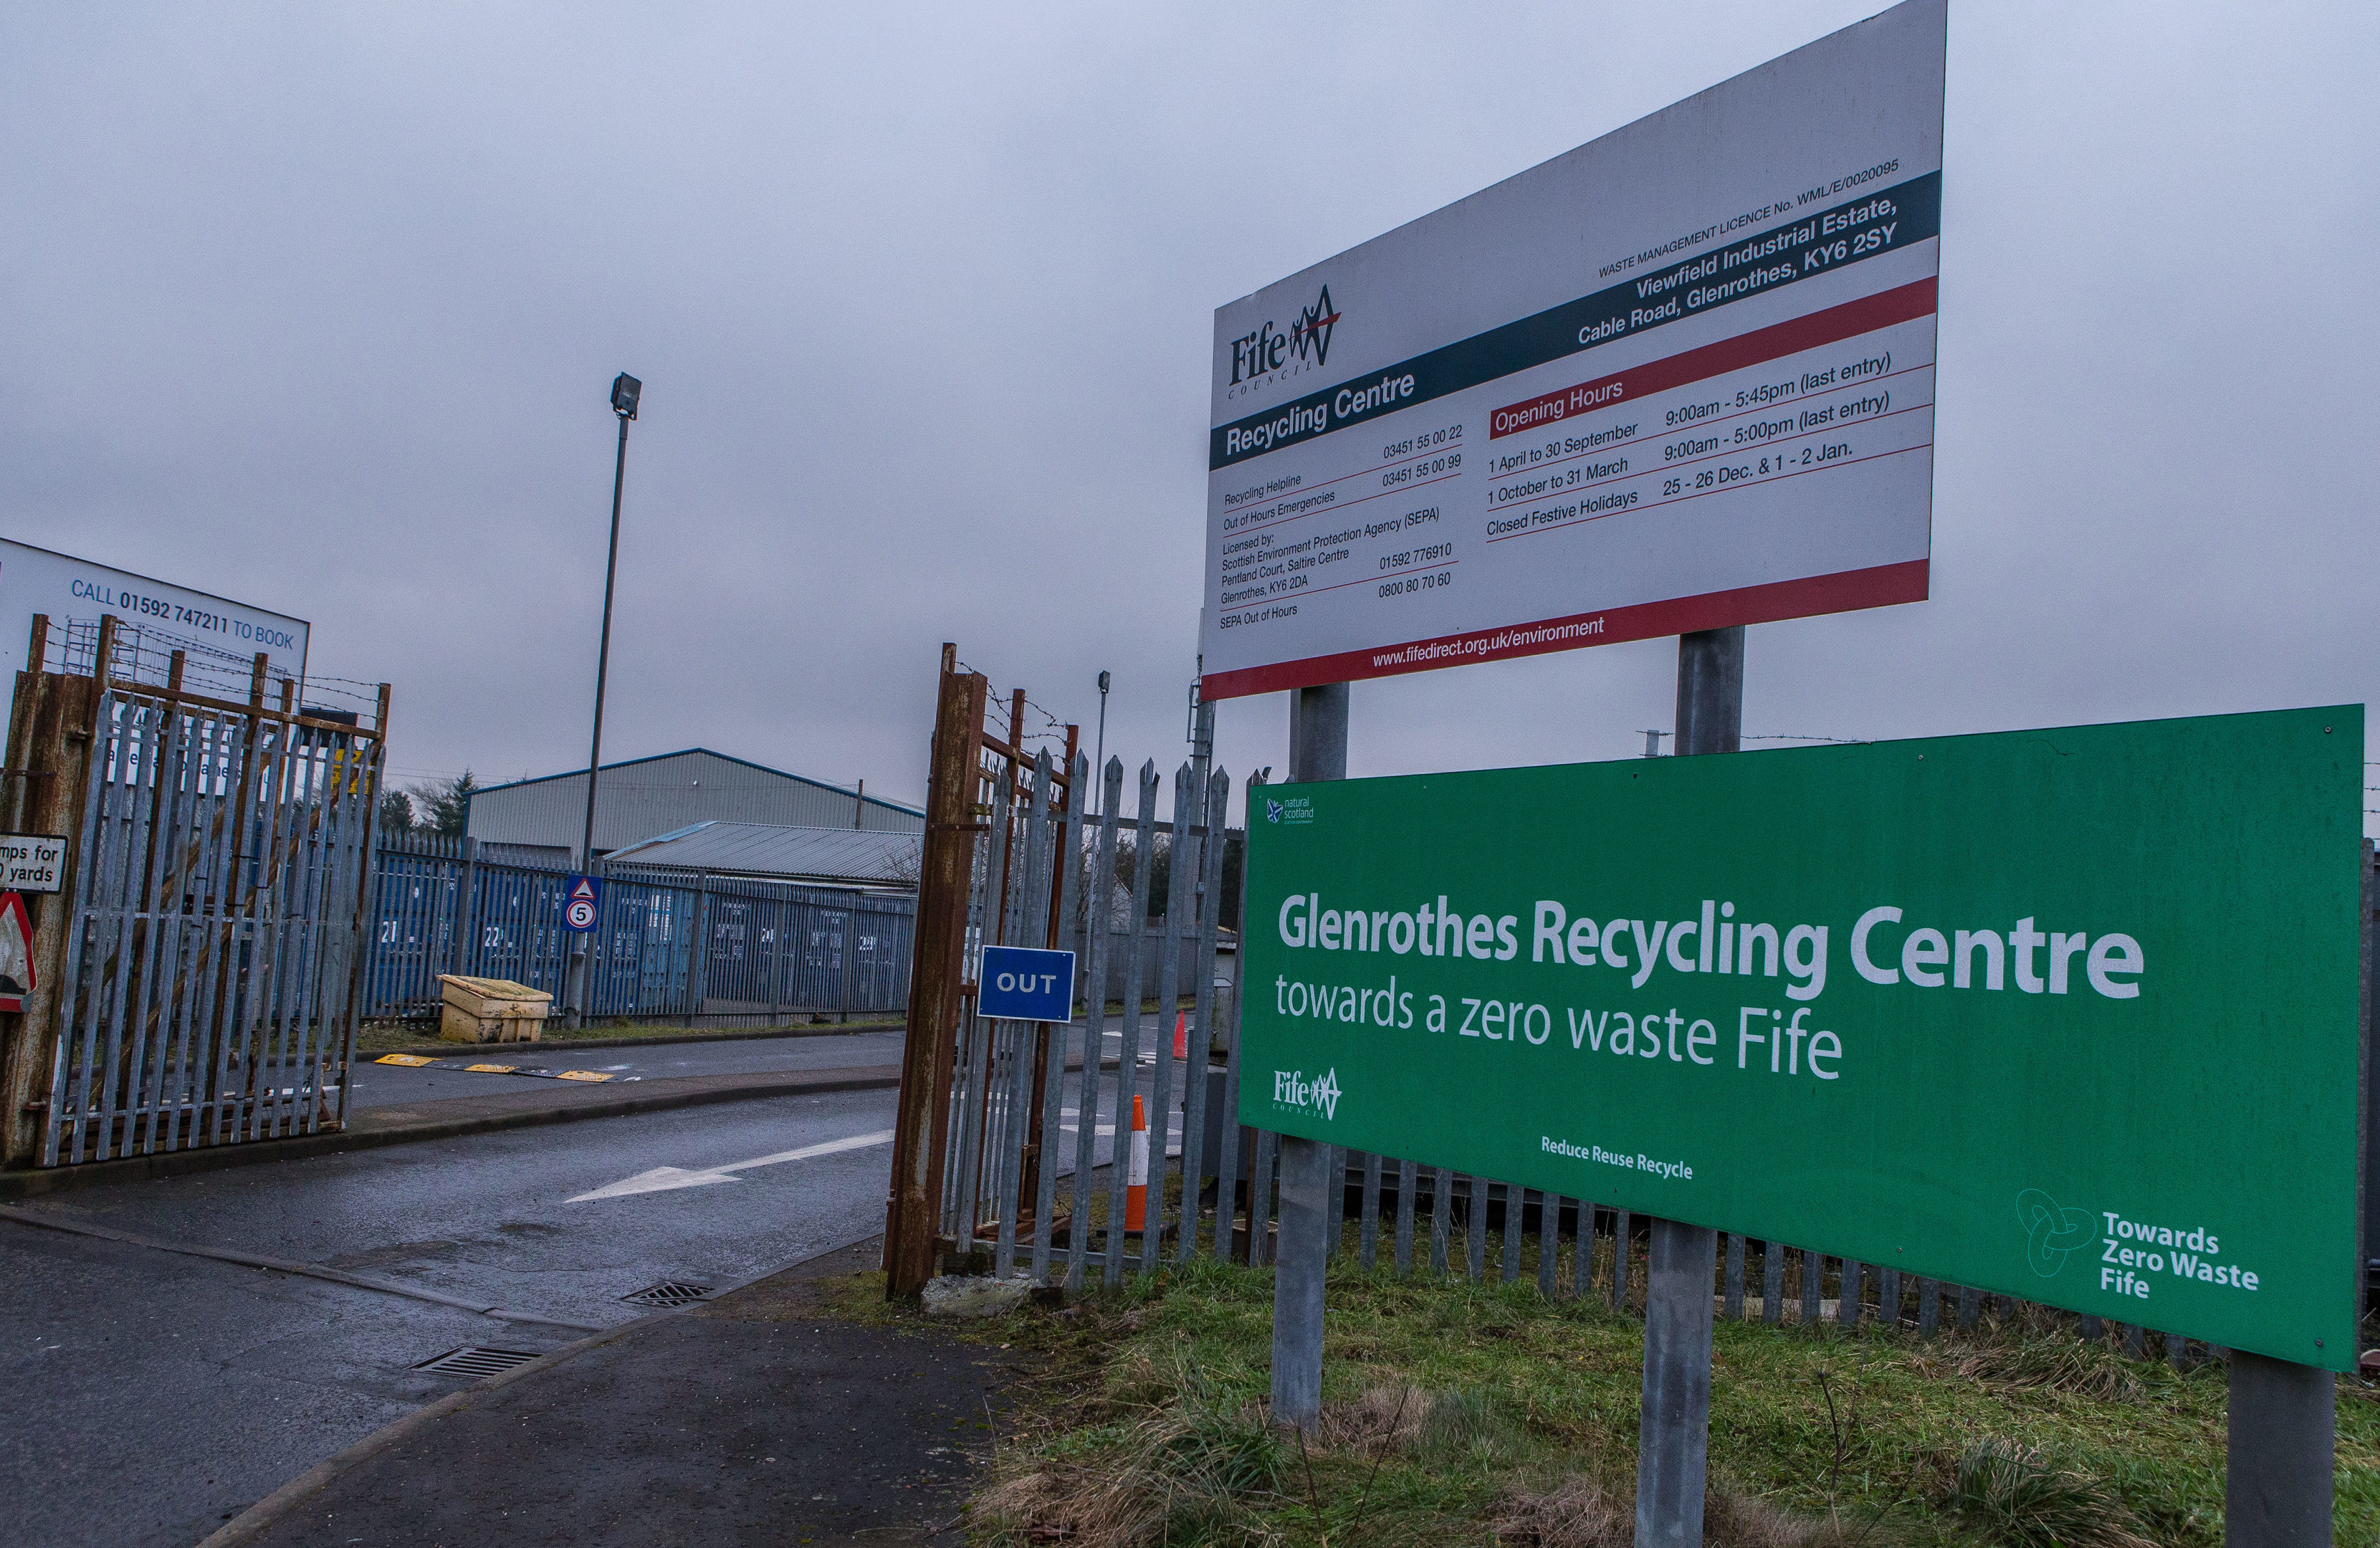 Glenrothes recycling centre.